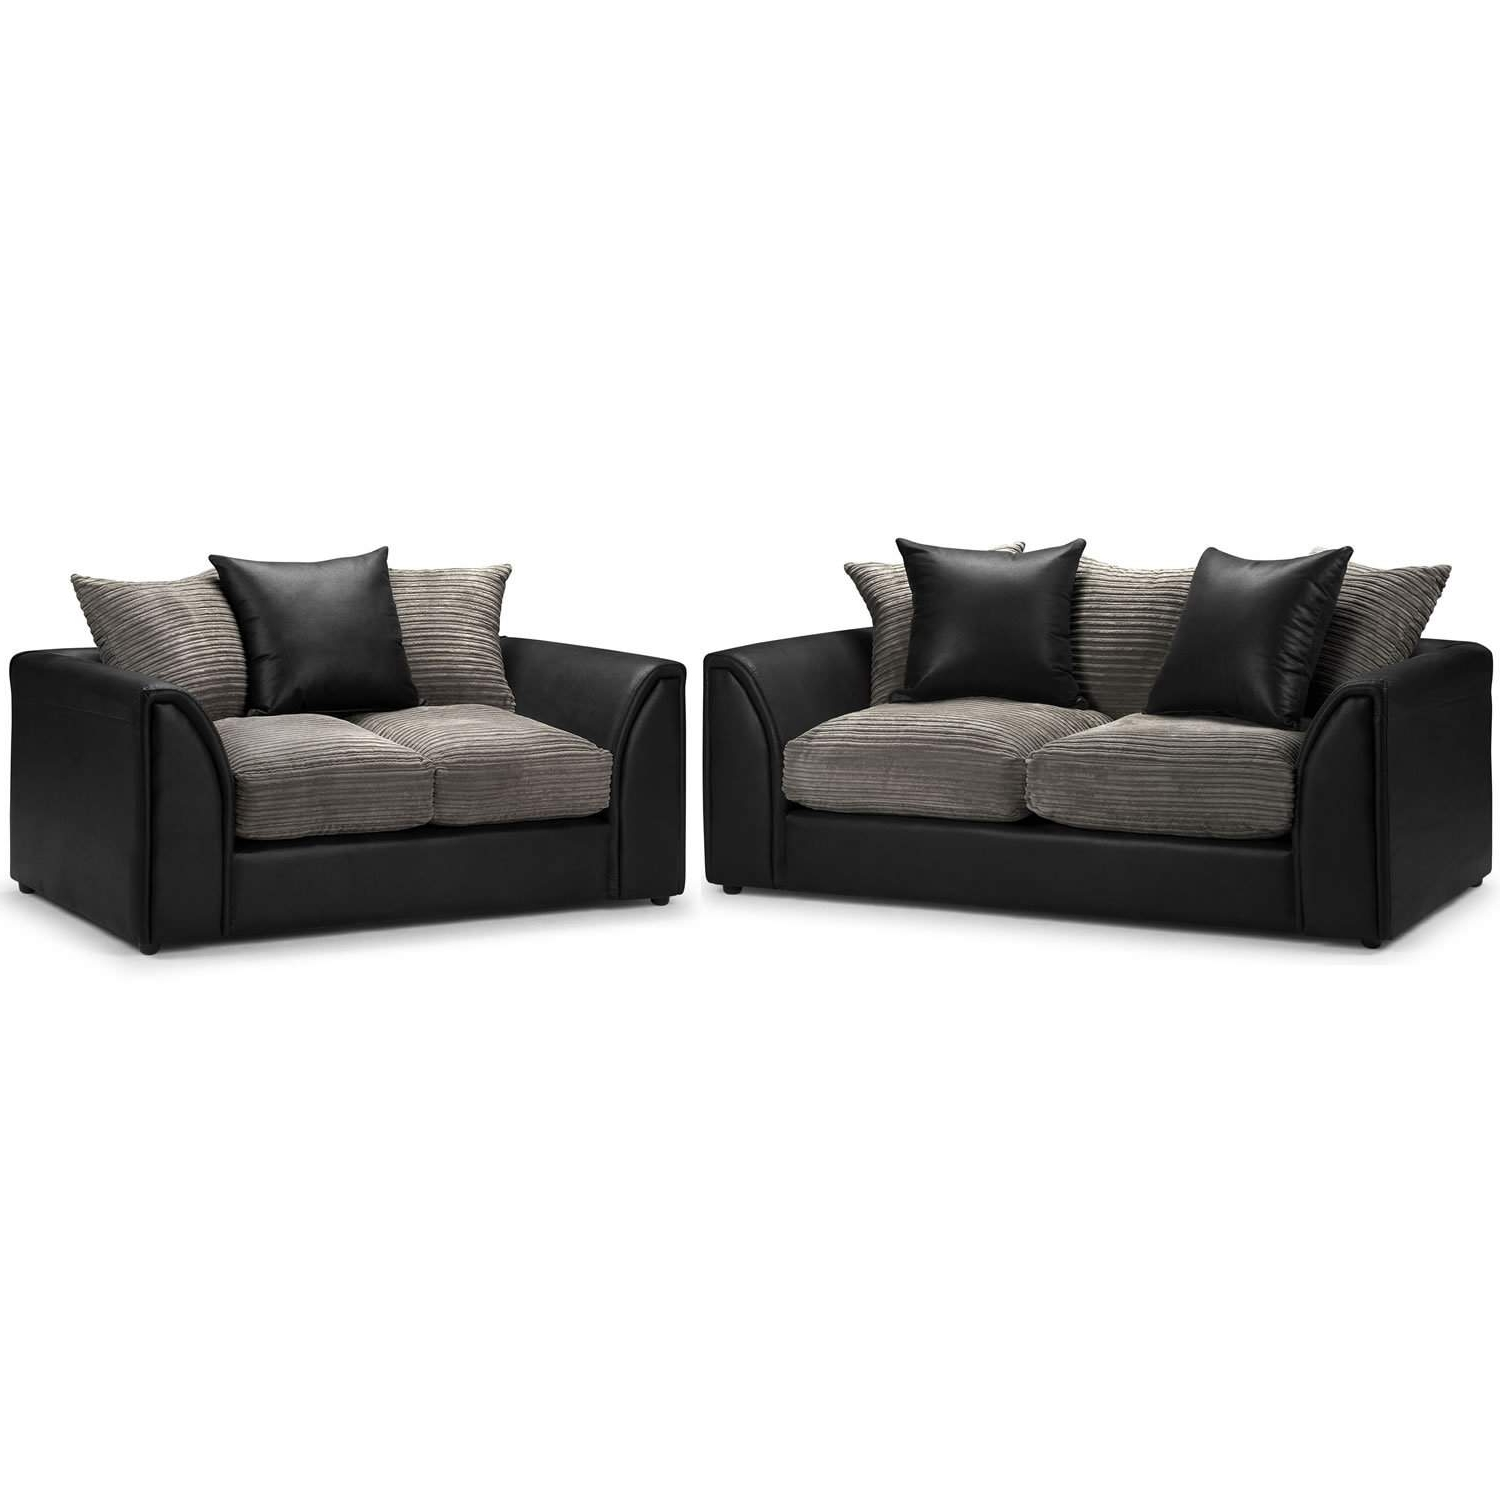 20 Best Collection Of Black 2 Seater Sofas